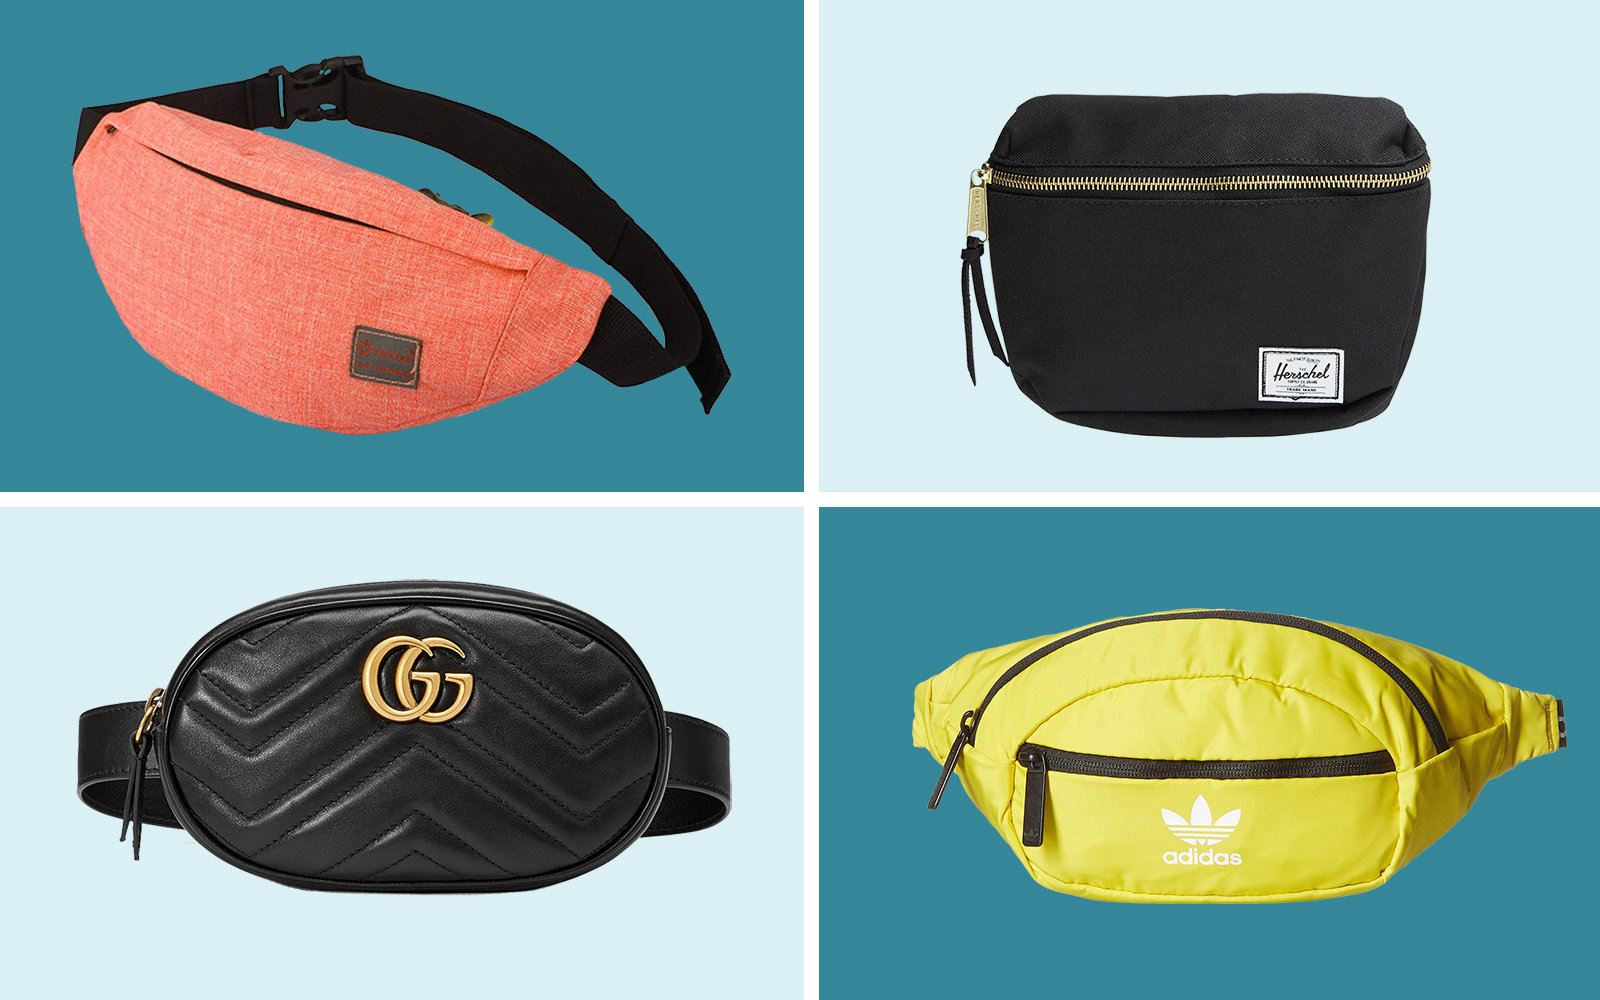 The 9 Best Fanny Packs for Travel, According to Customer Reviews